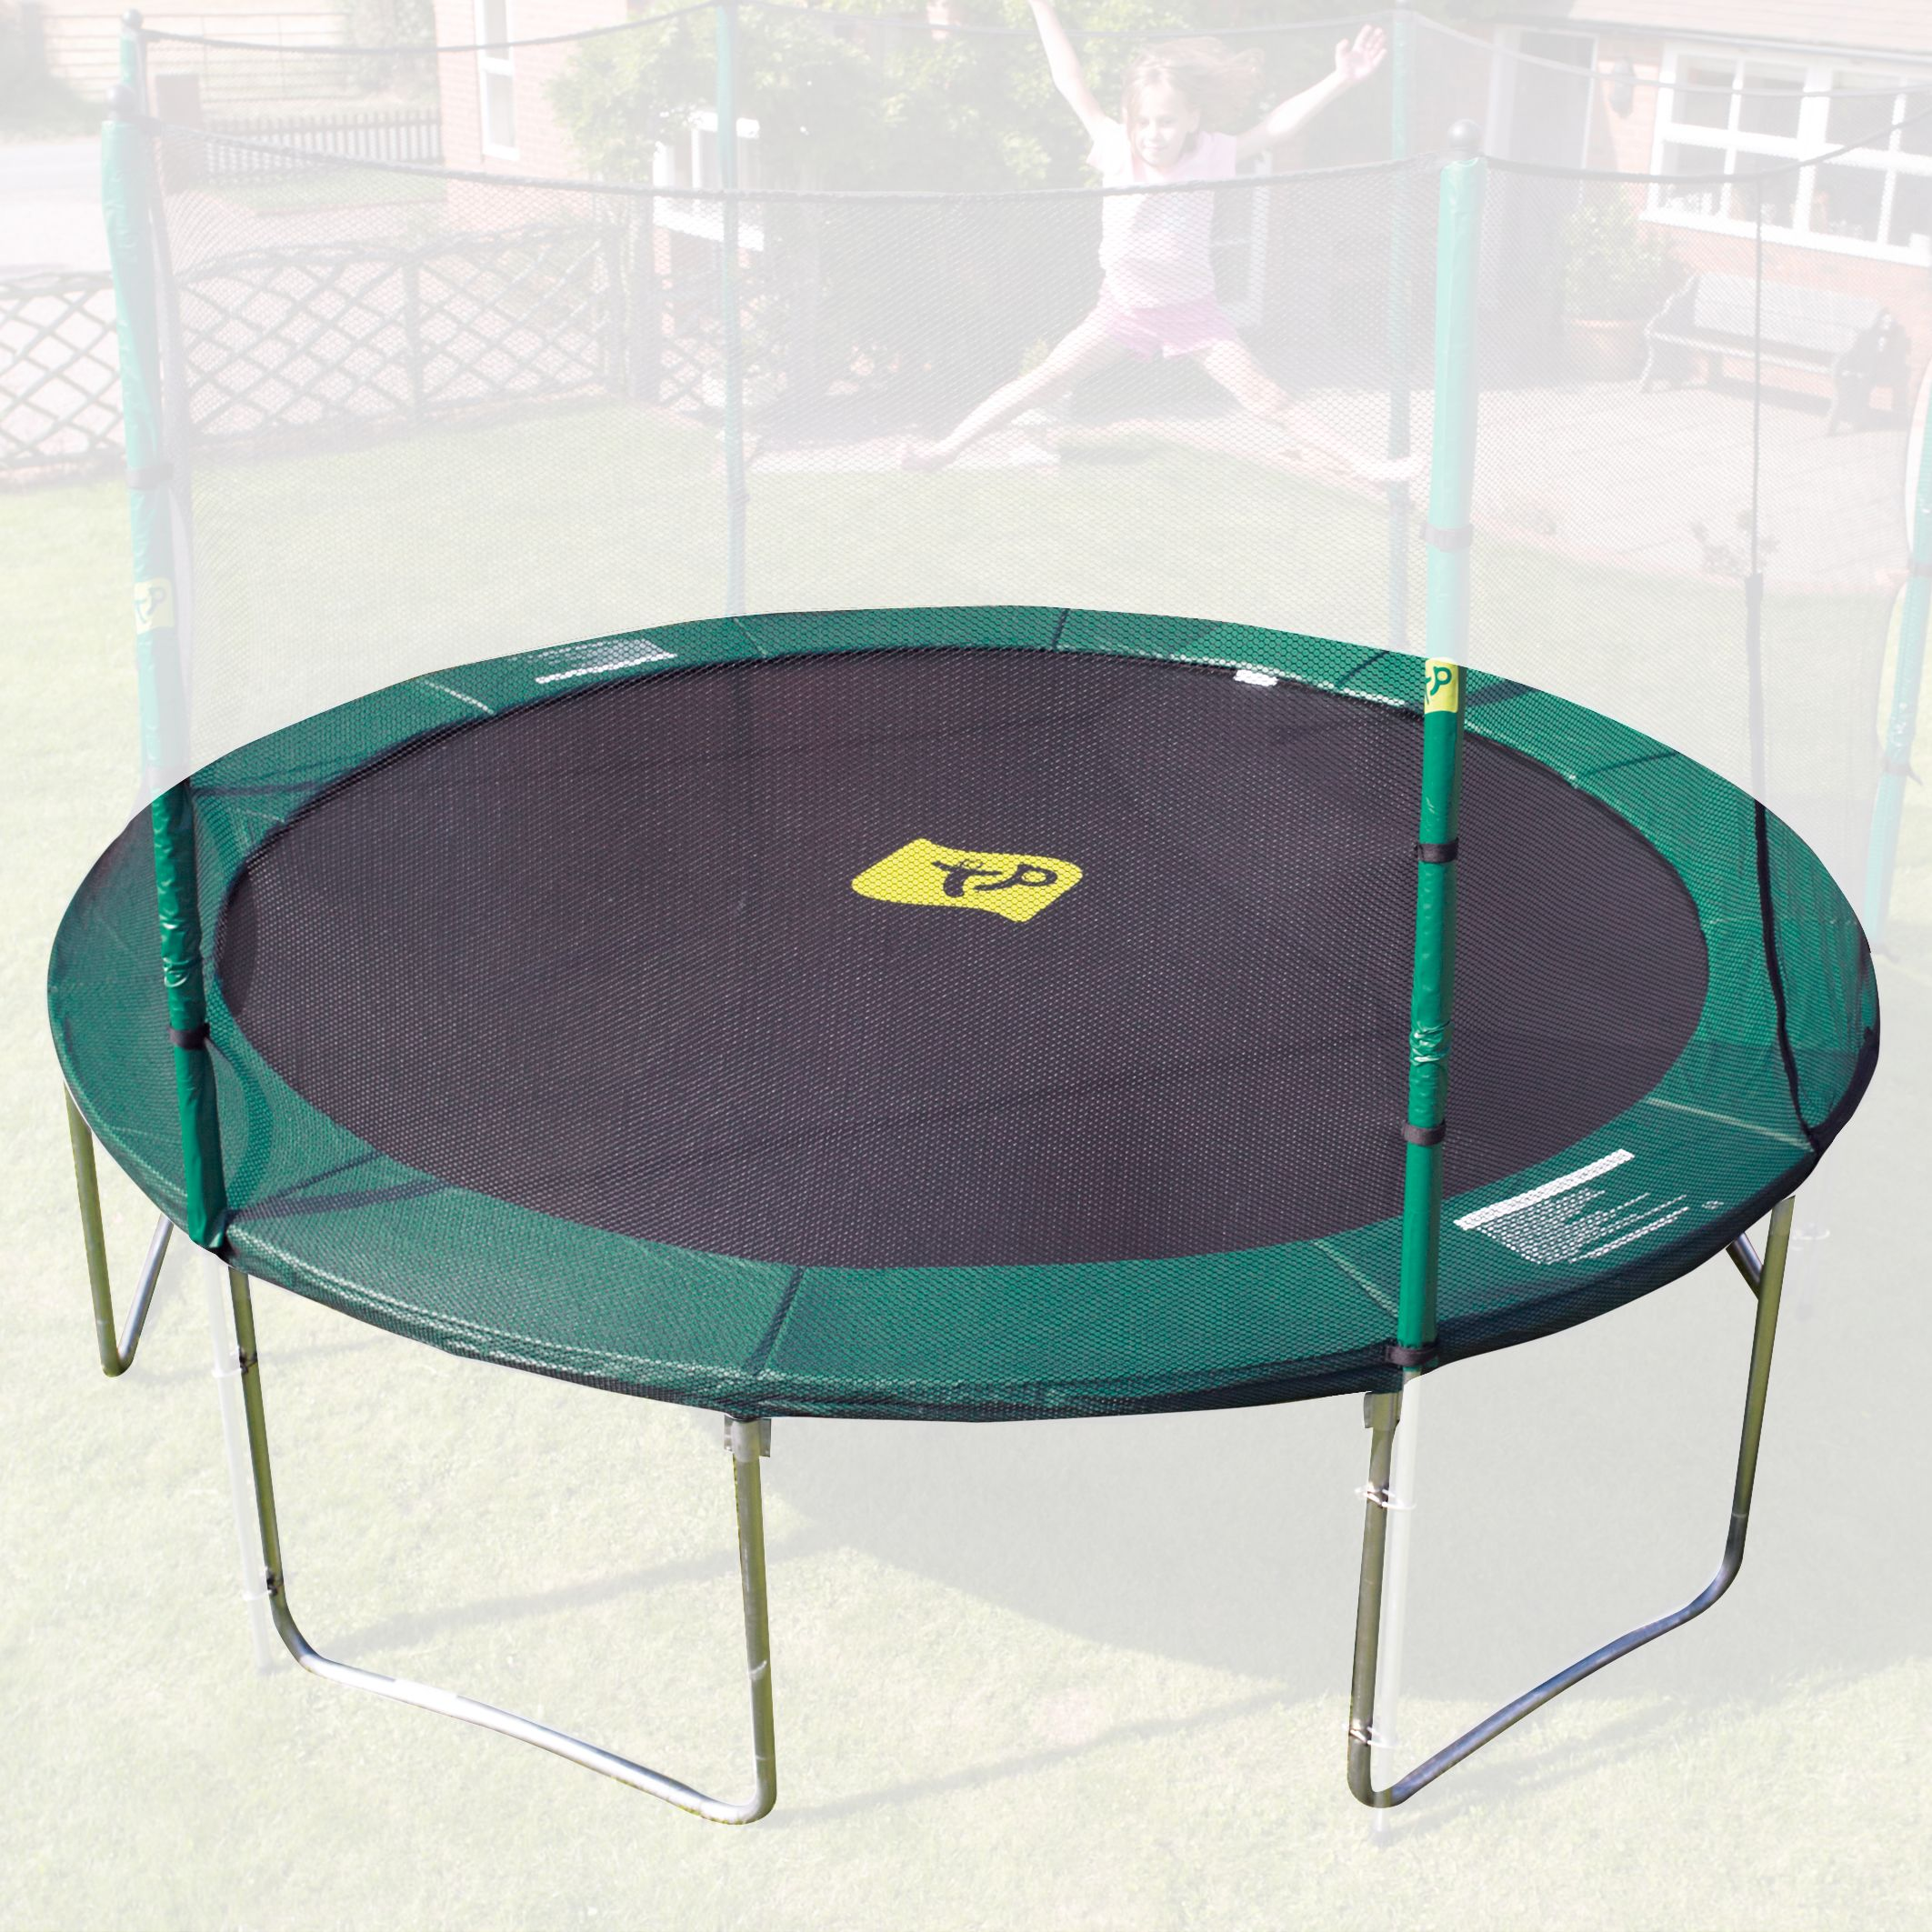 TP278 Capital Trampoline, 10ft